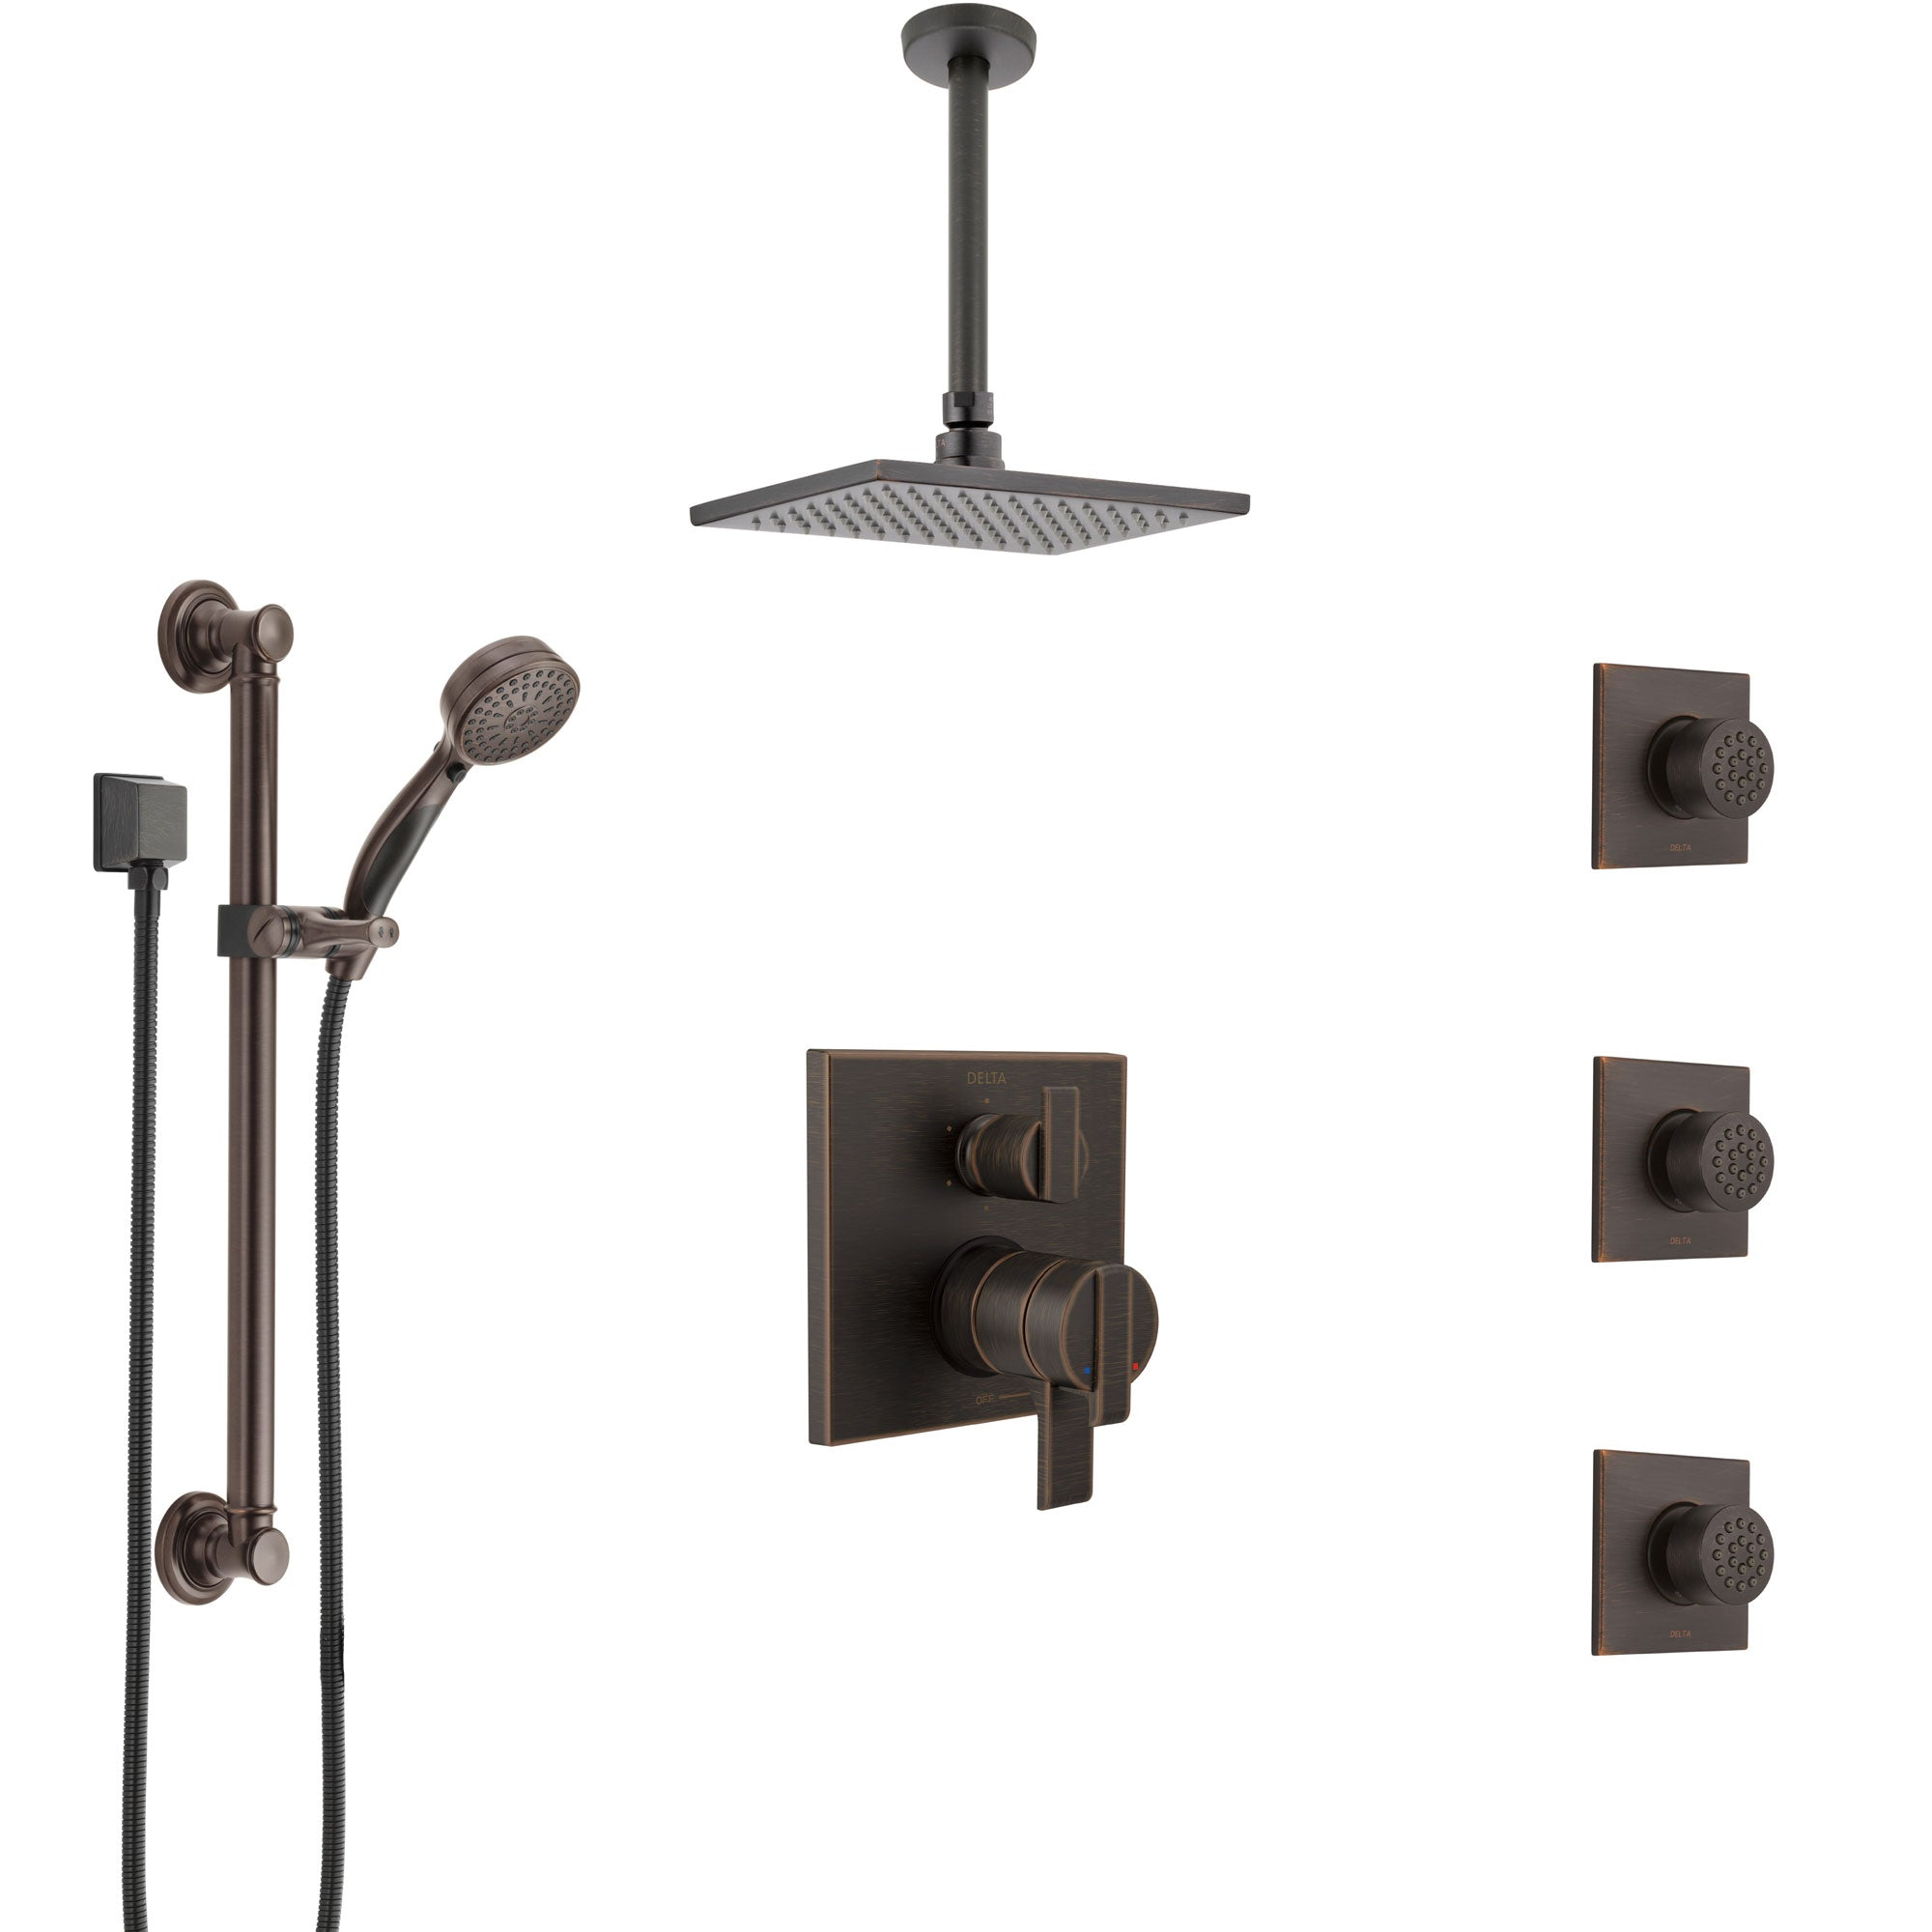 Delta Ara Venetian Bronze Shower System with Dual Control Handle, Integrated Diverter, Ceiling Showerhead, 3 Body Jets, Grab Bar Hand Spray SS27967RB1